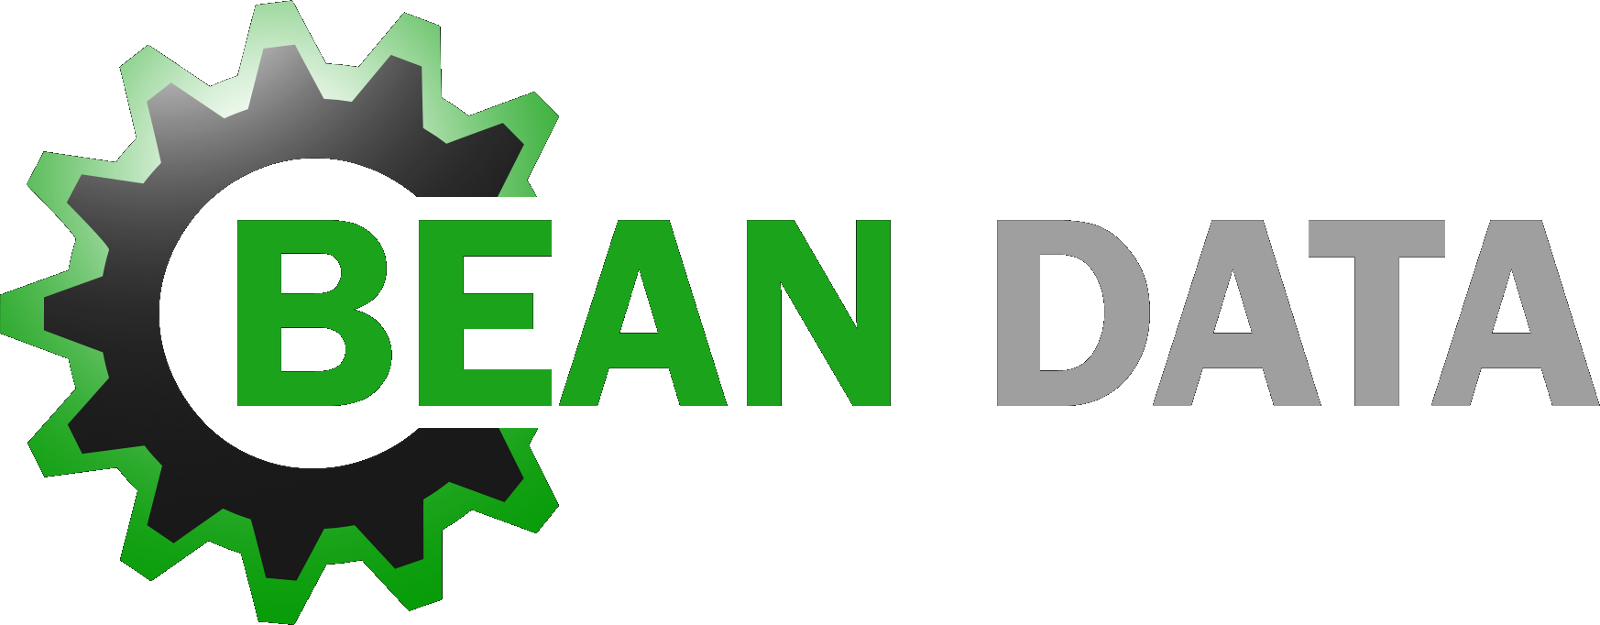 Bean Data - Computer, Network and Information Technology Services